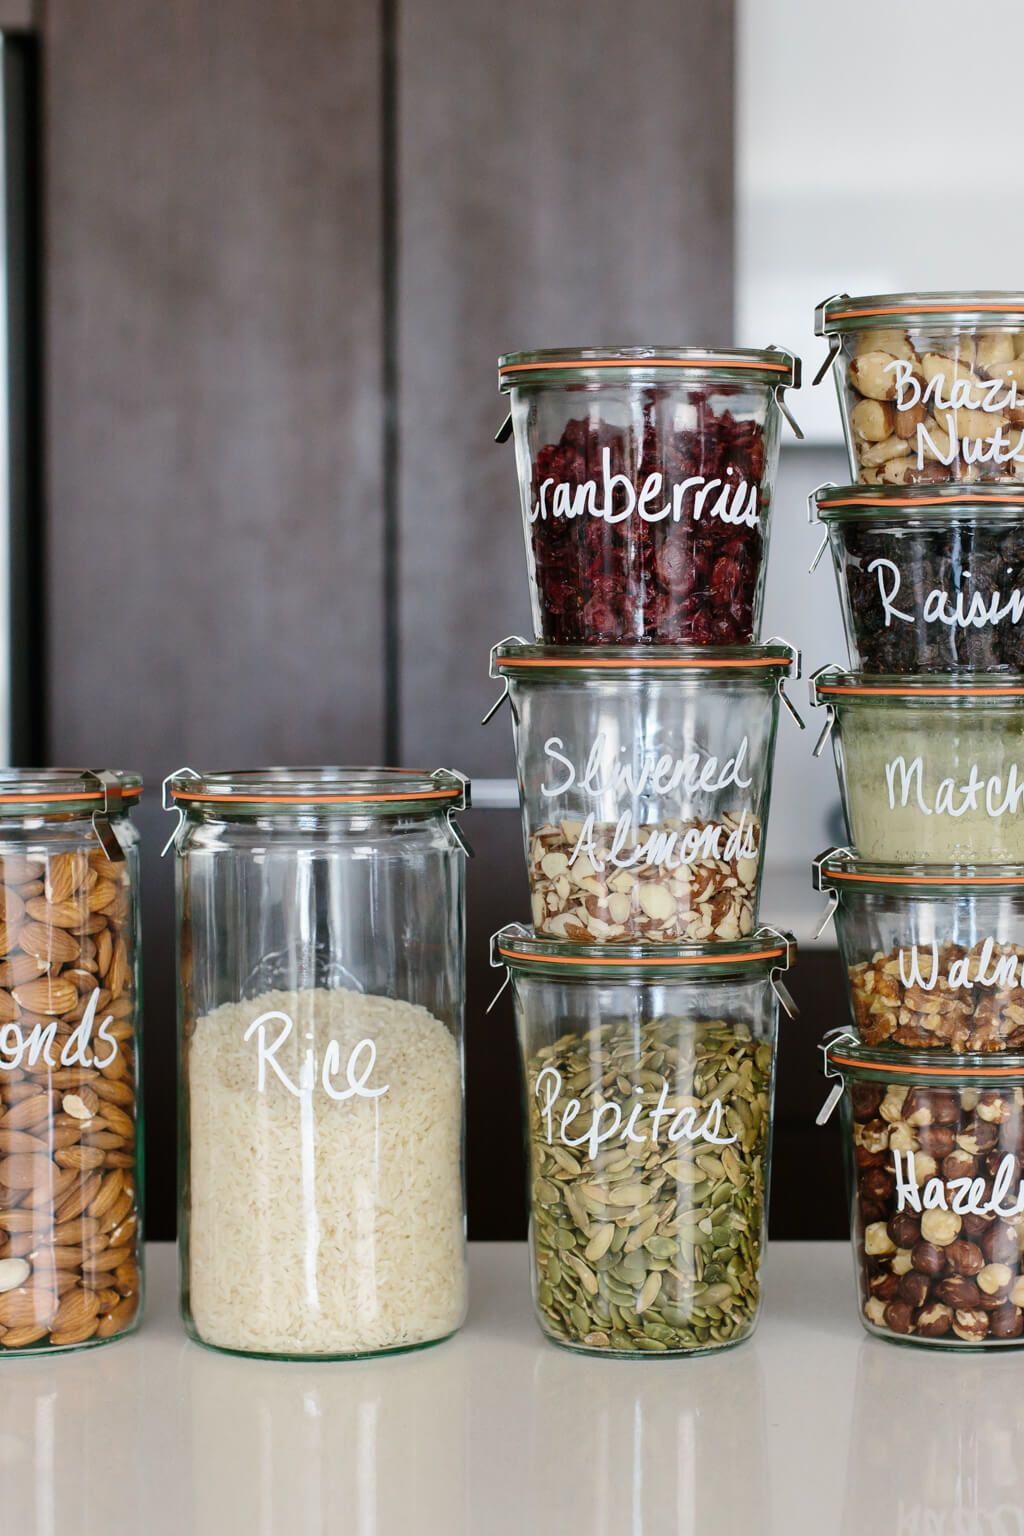 Pantry Organization: Tips for a Creating a Healthy Pantry #pantryorganizationideas